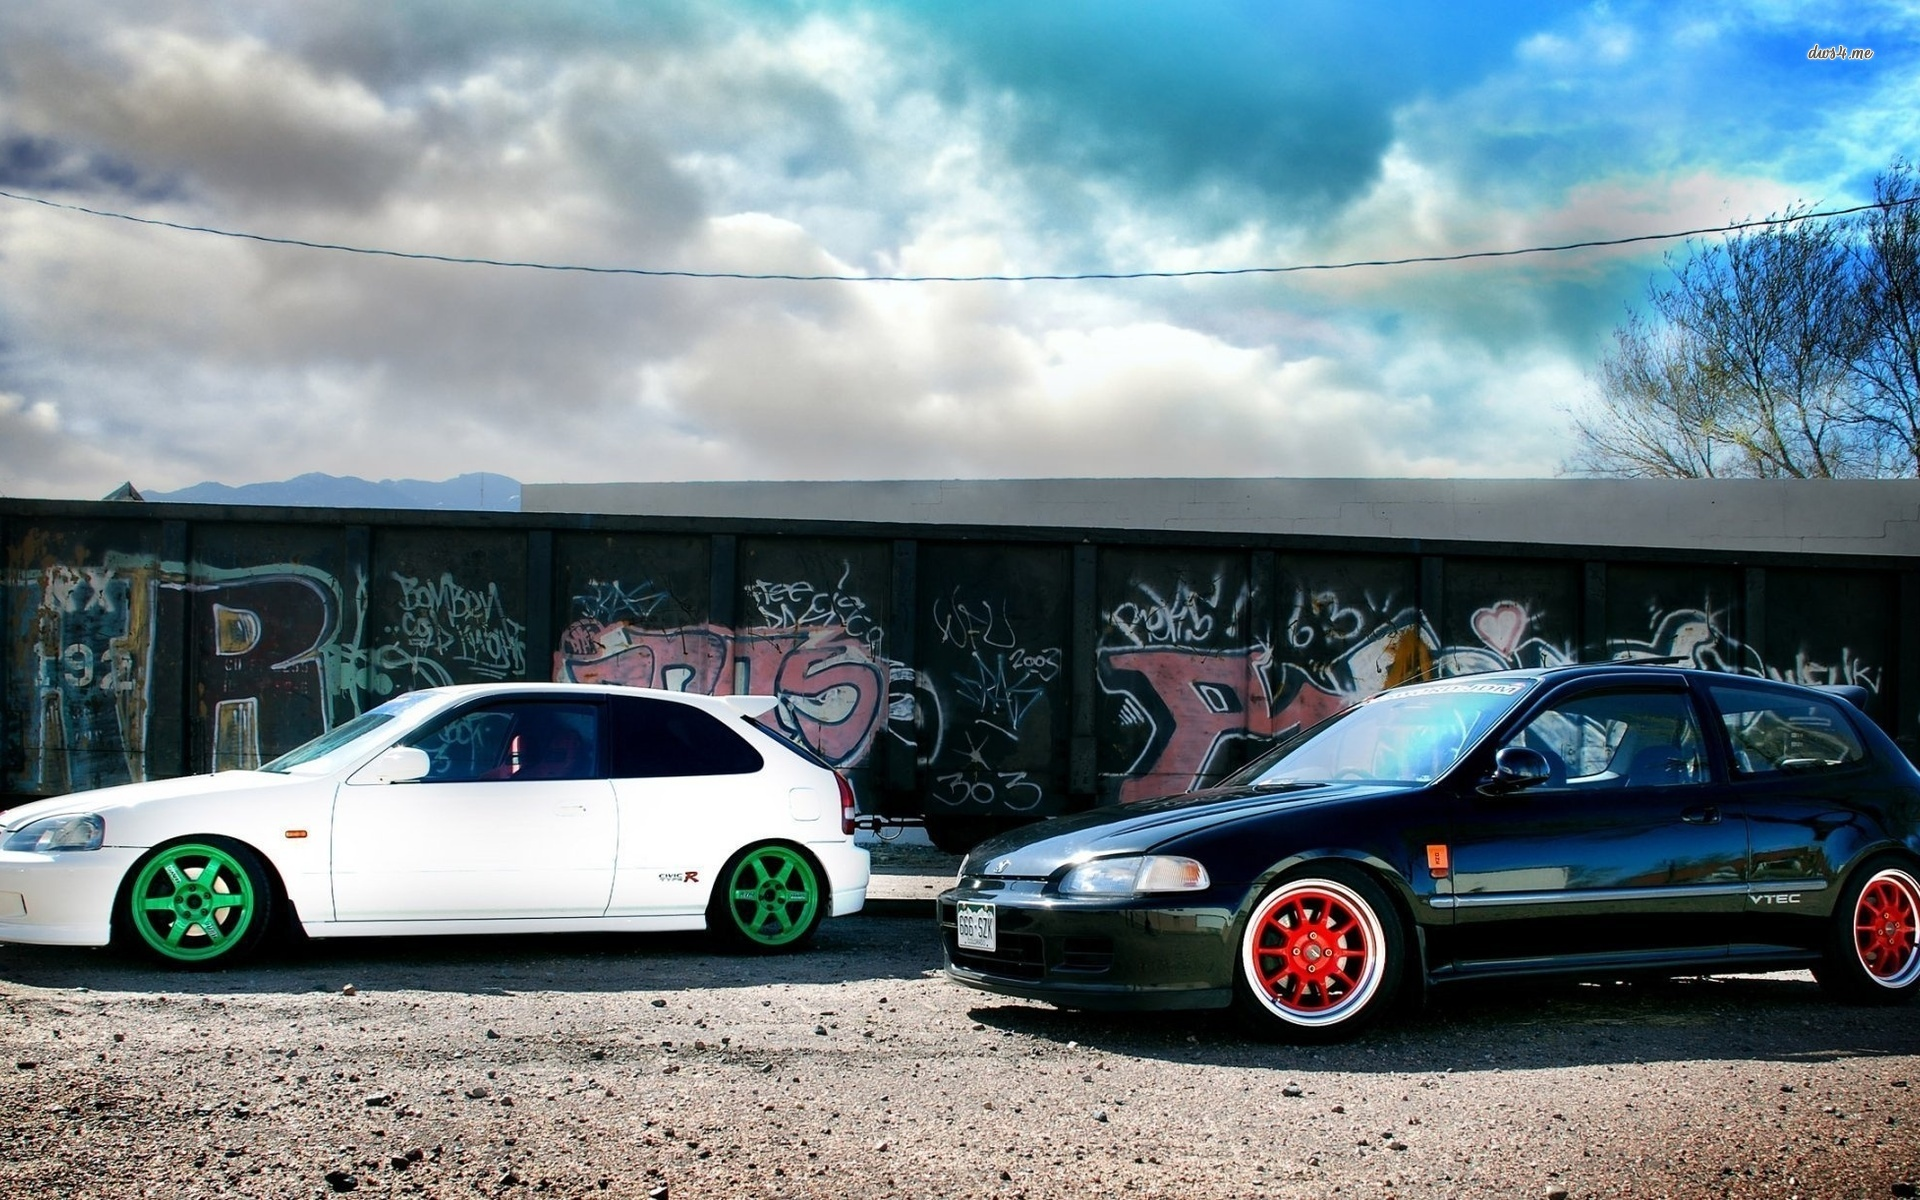 HONDA CIVIC TUNING. July 3, 2015 tuning · Tuning Cars Permalink